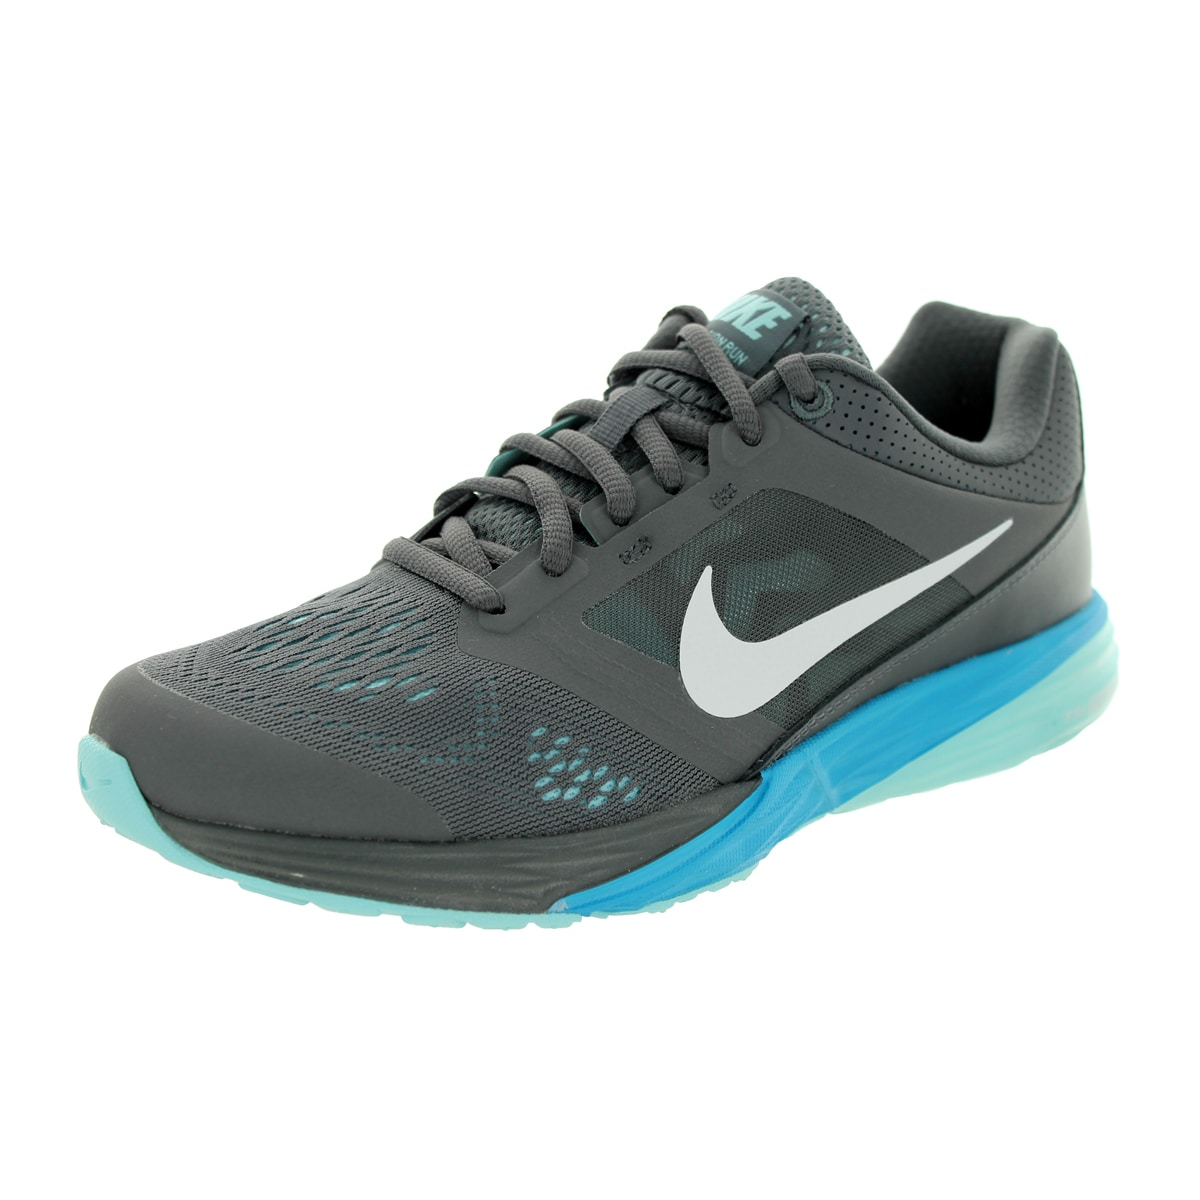 9c5ee295abe7 Shop Nike Women s Tri Fusion Run Dark Grey White Blue Lagoon Cp Running Shoe  - Free Shipping Today - Overstock - 12328973